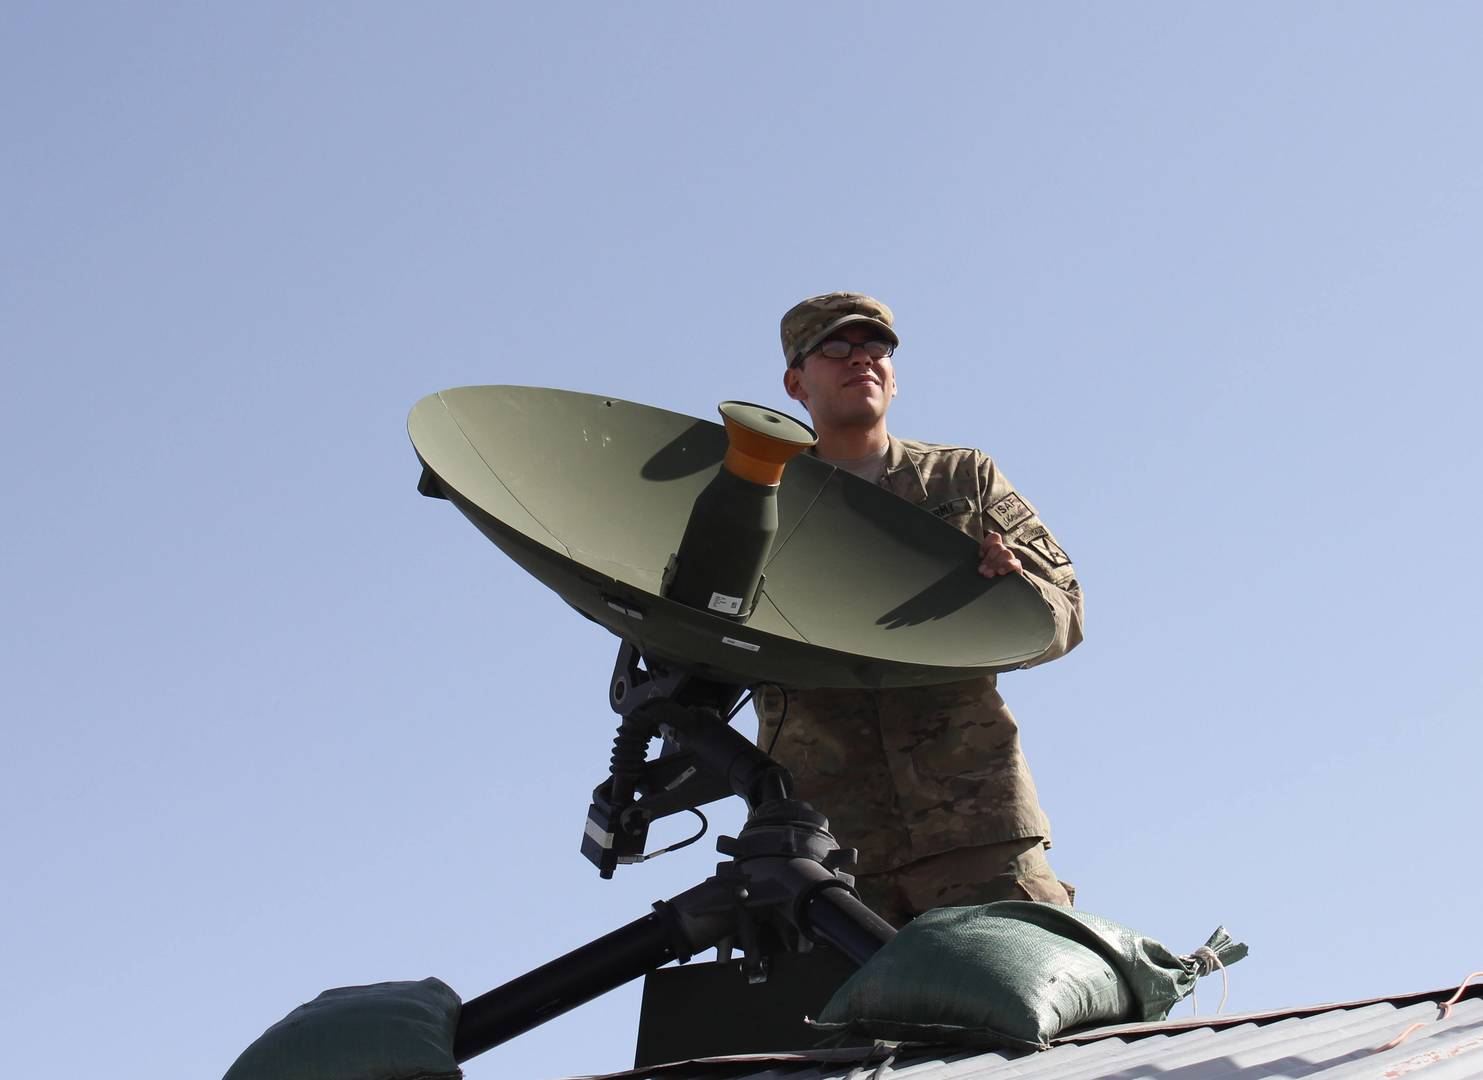 C4ISR - Army Soldier Uses Air Force Gobal Broadcasting System (GBS) to Direct Fire - Image